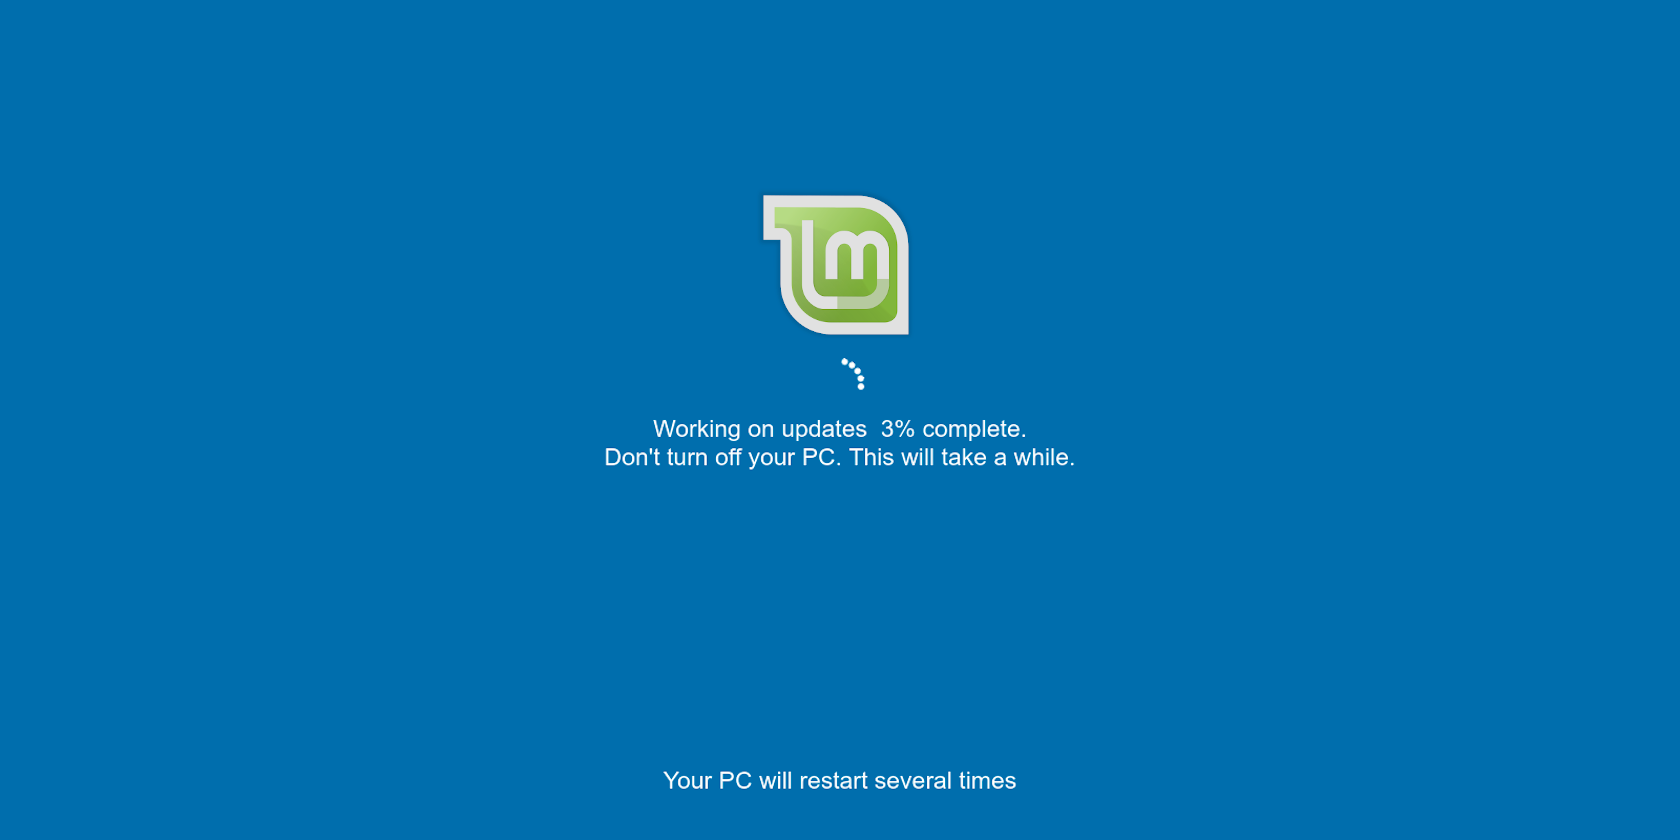 Oh My! Is Linux Mint Turning Into Windows?